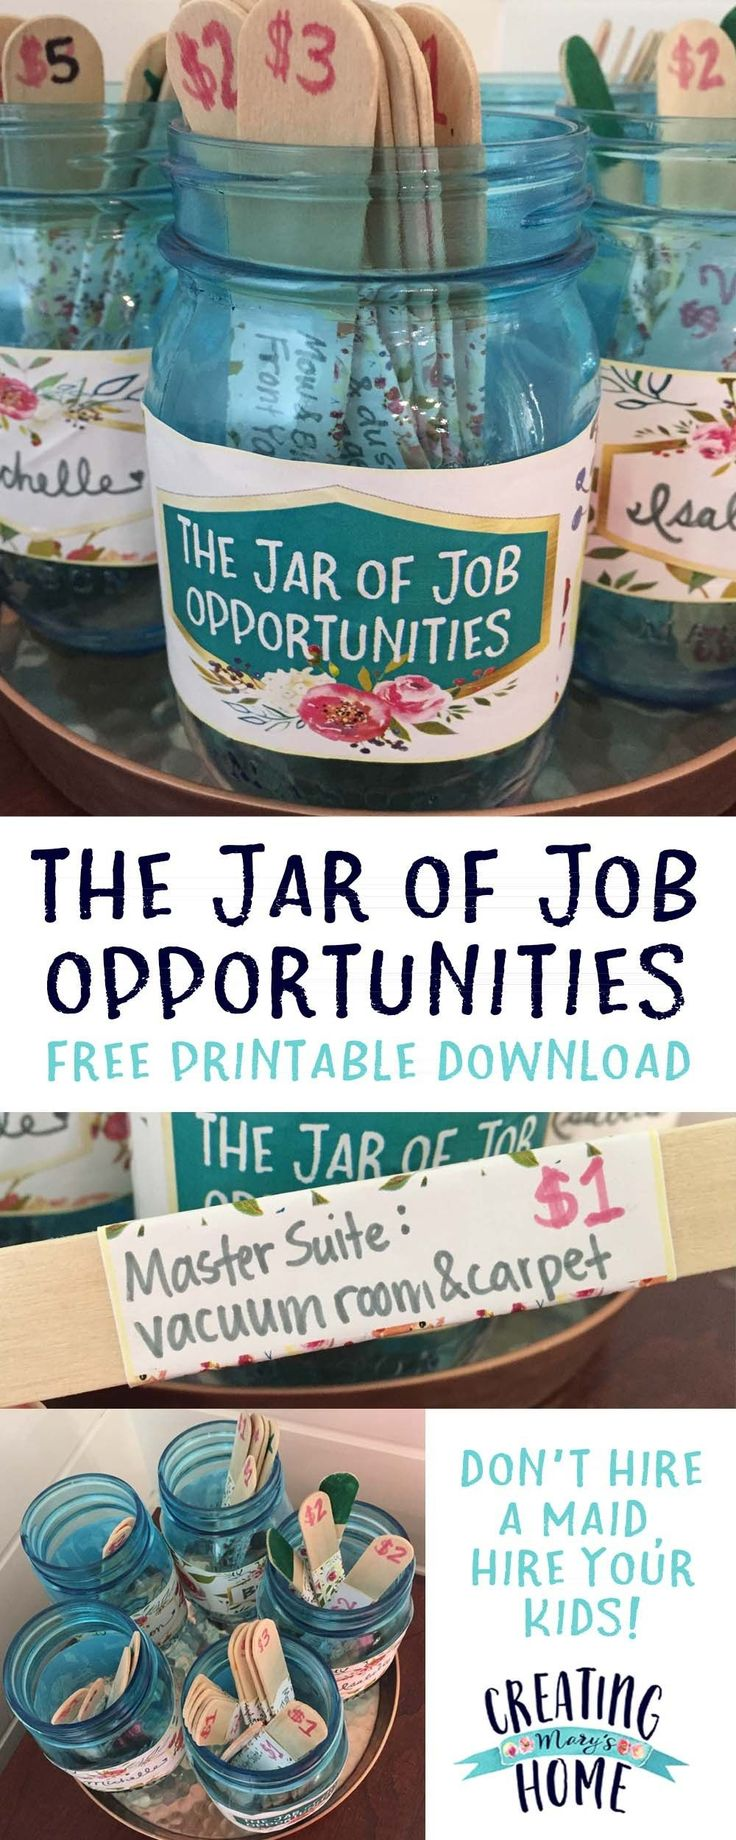 My kids were complaining recently that they want chances to earn money. We've never done allowance before and they're just below the baby-sitting age, so money-making opportunities have…